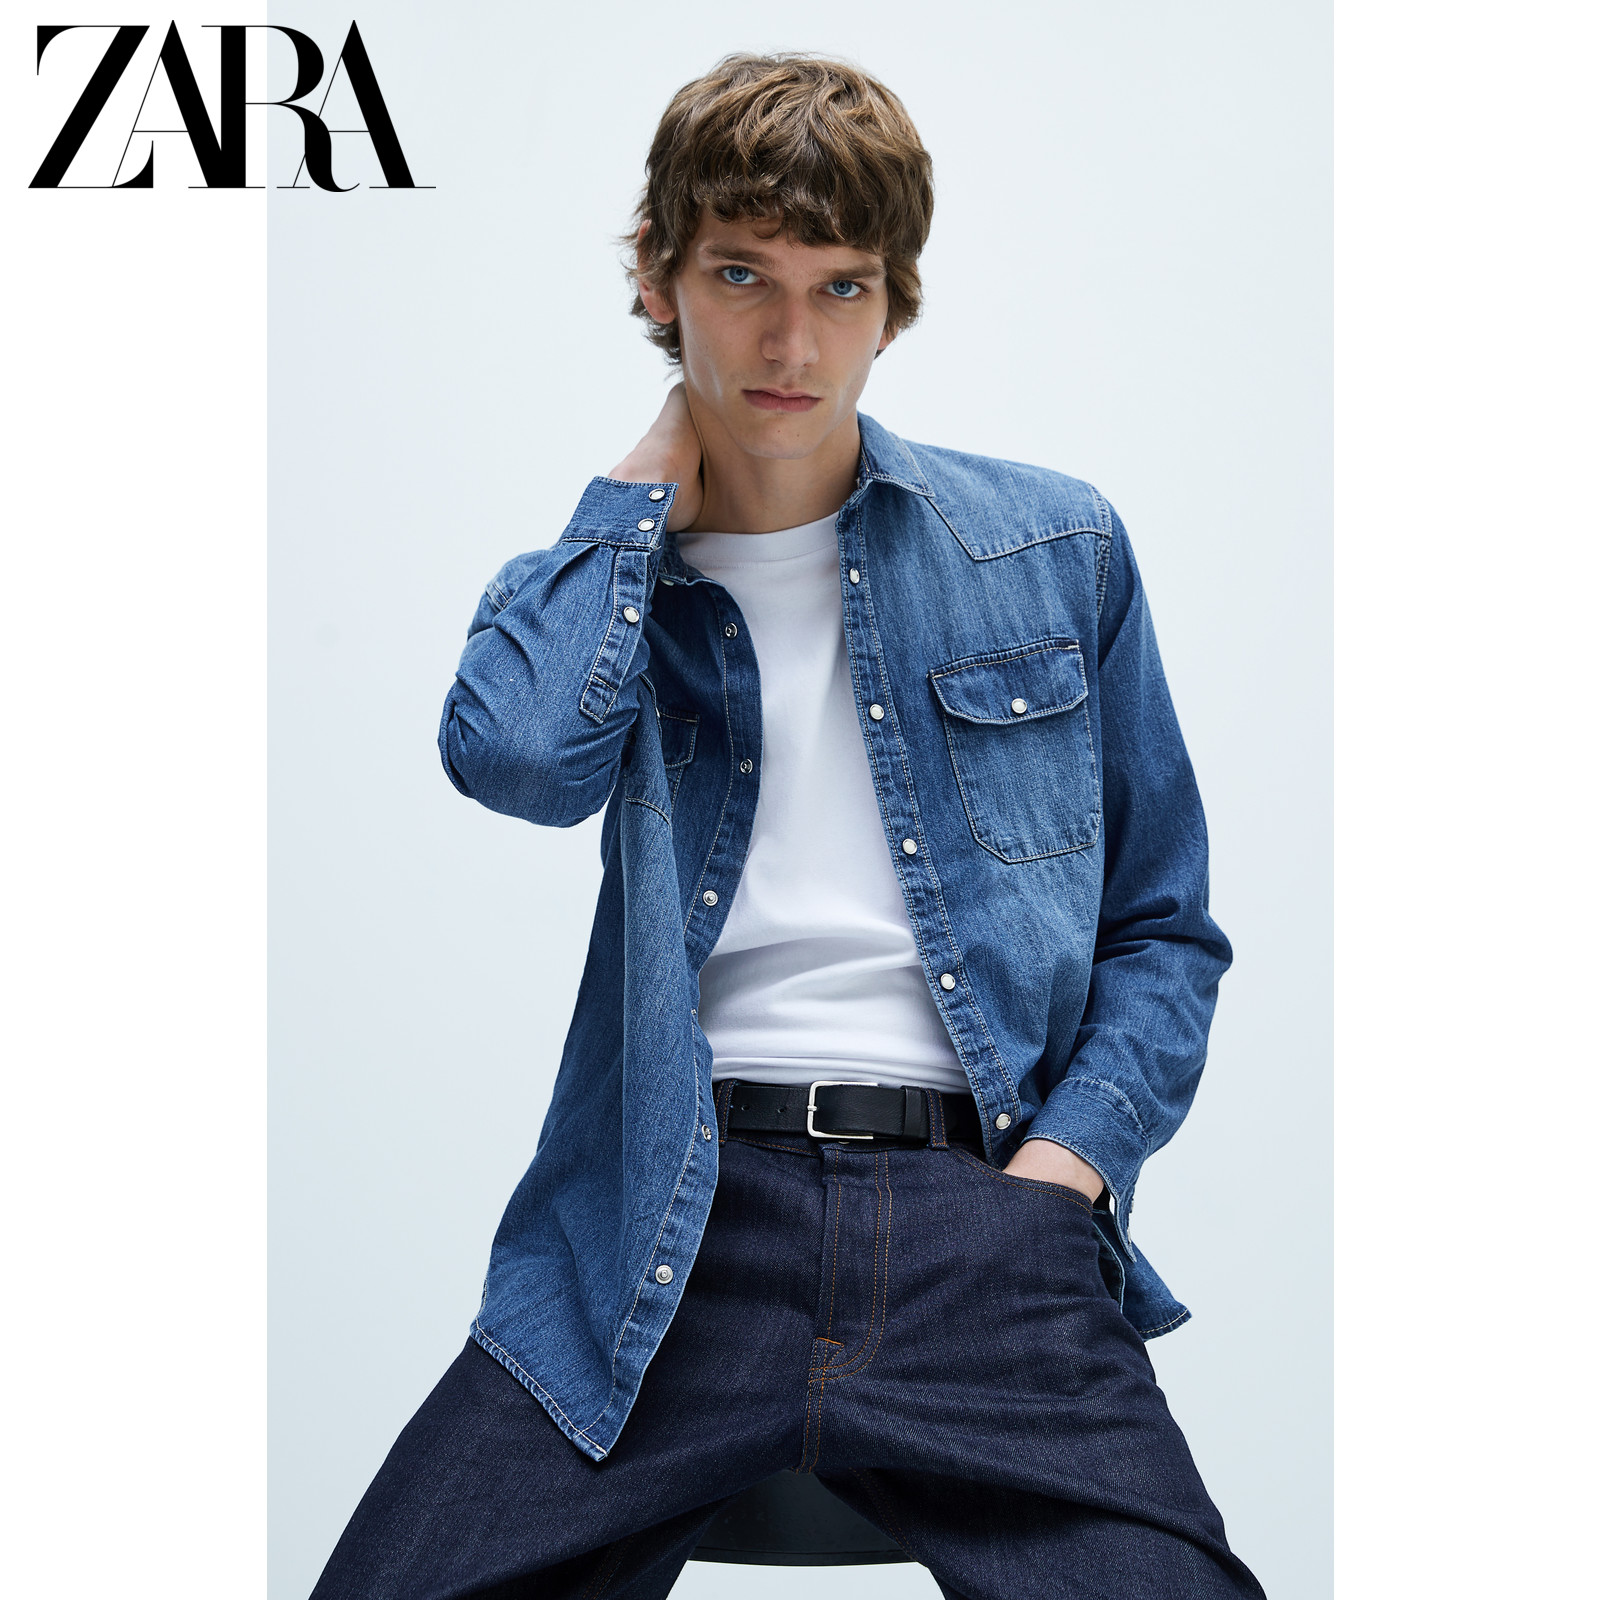 Zara new men's casual line decoration denim shirt 08574499427